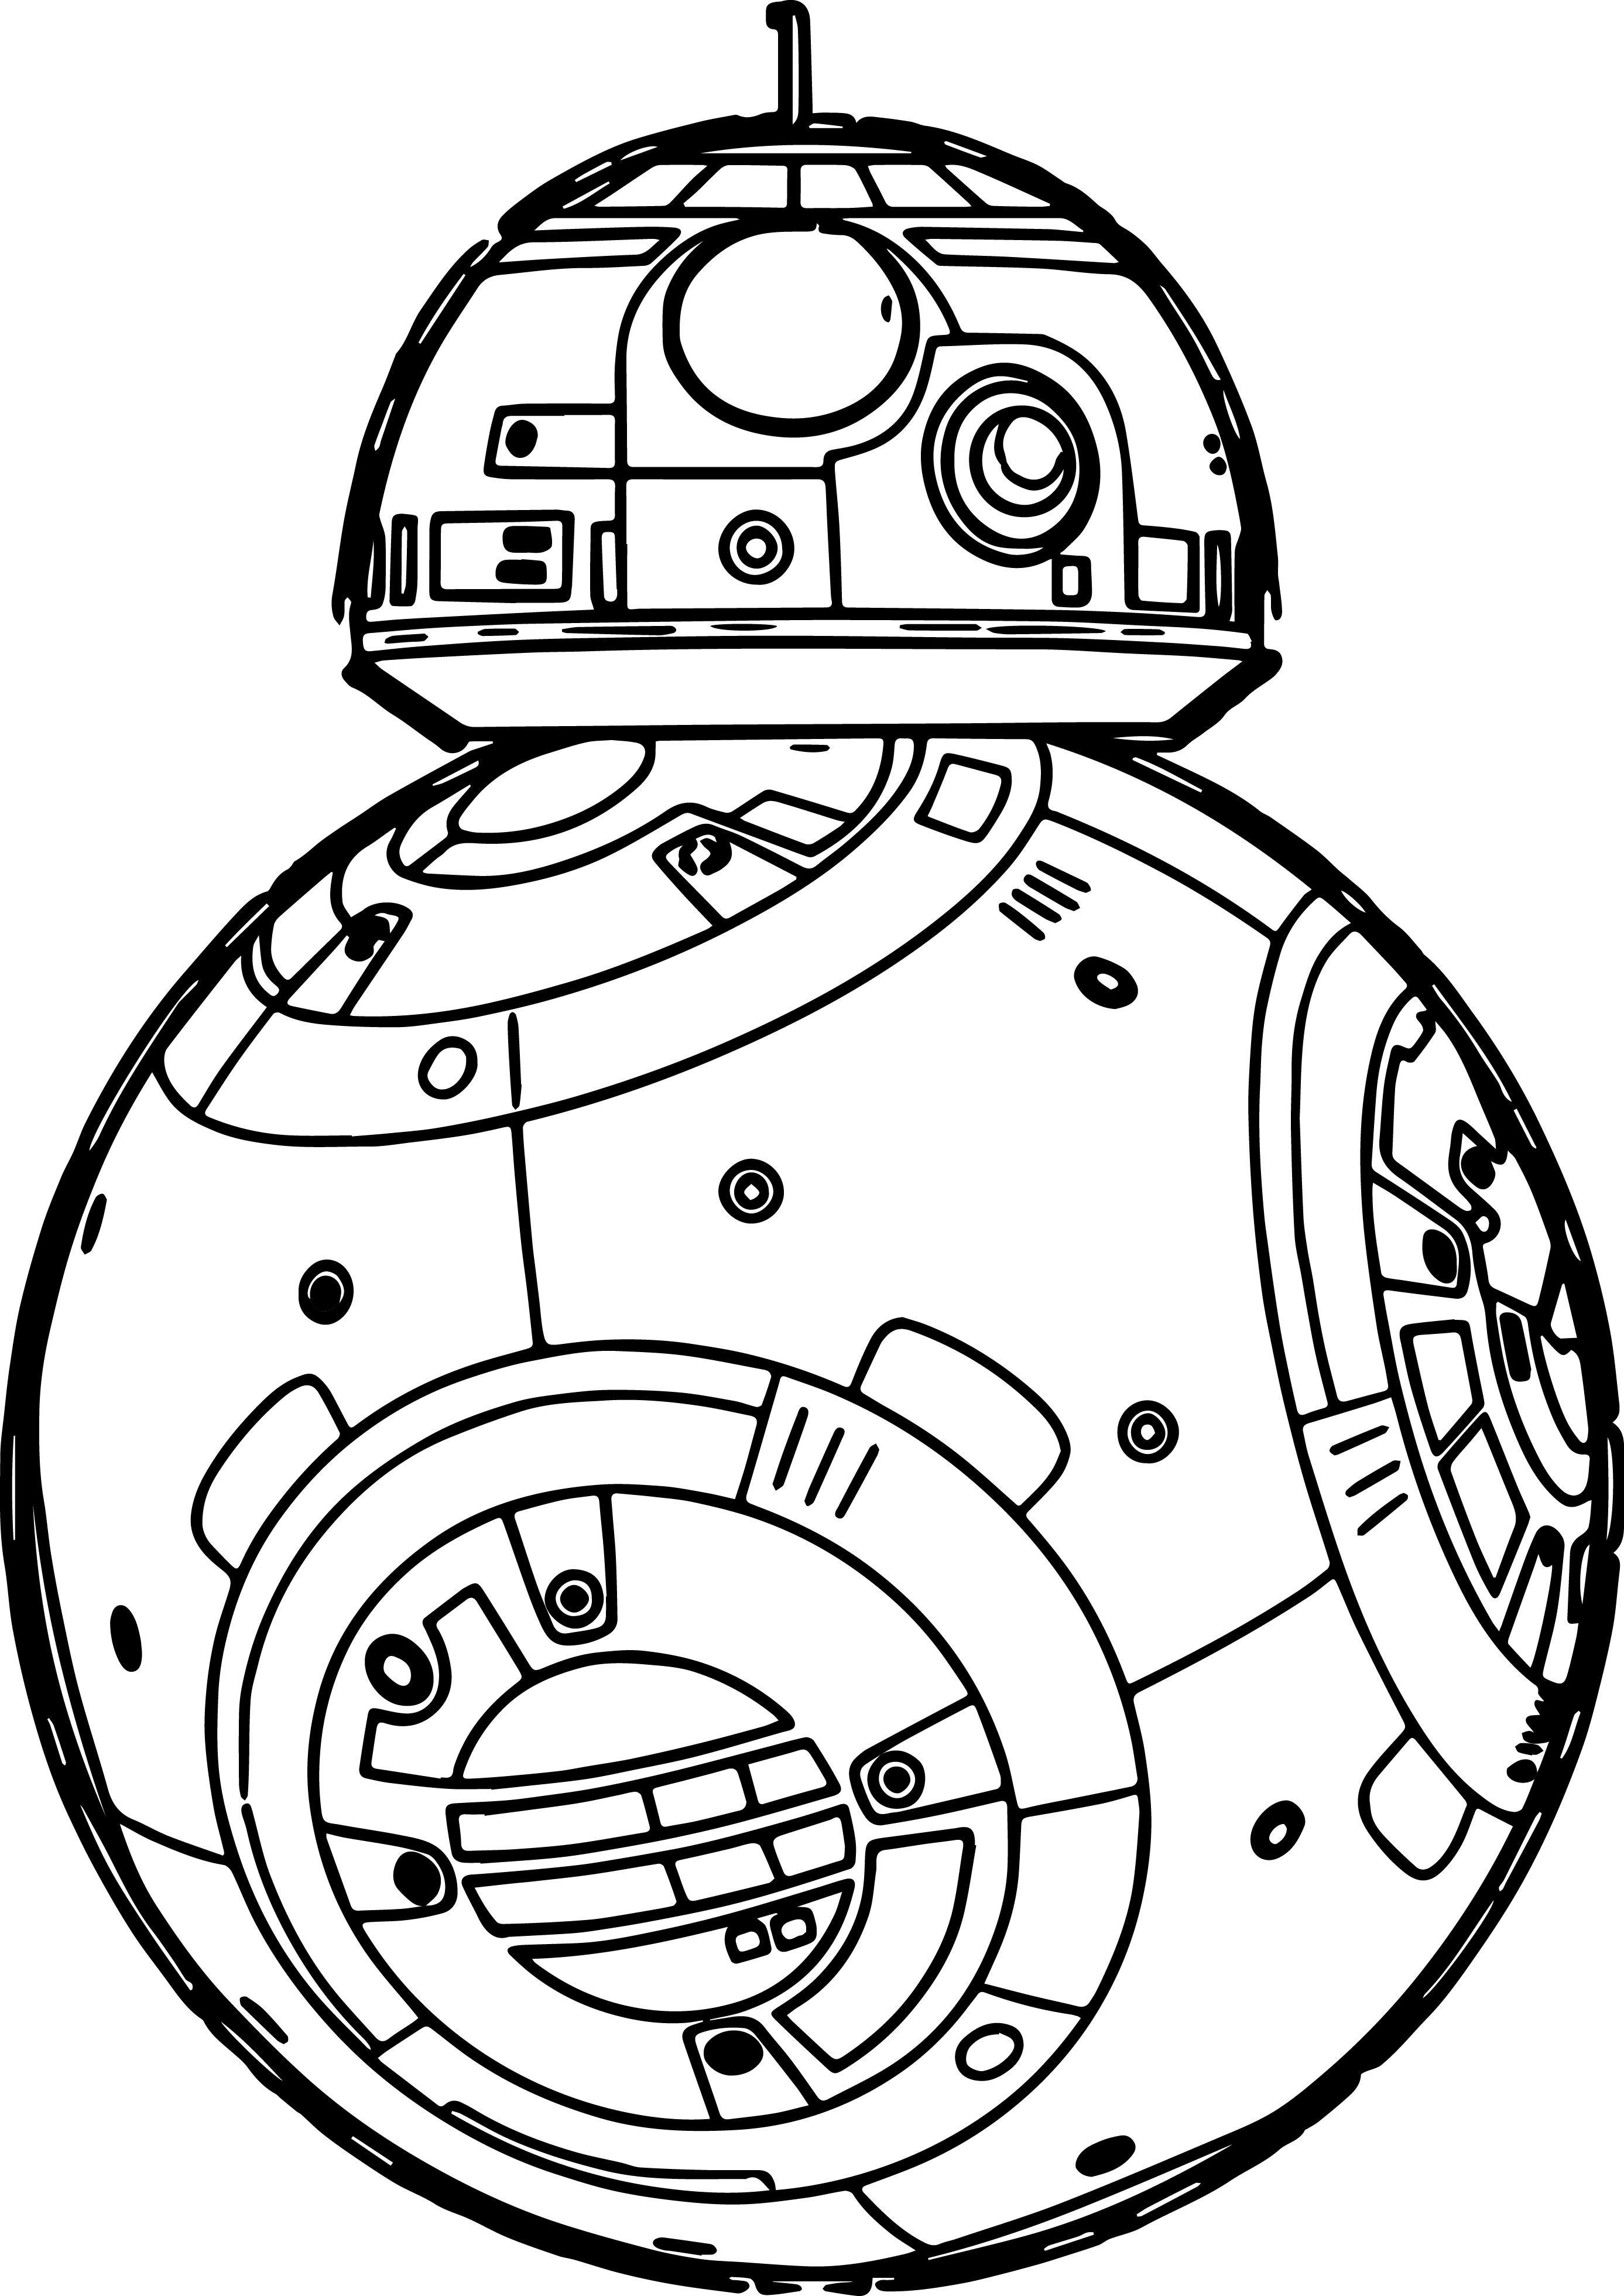 Star Wars The Force Awakens Coloring Pages Wecoloringpage